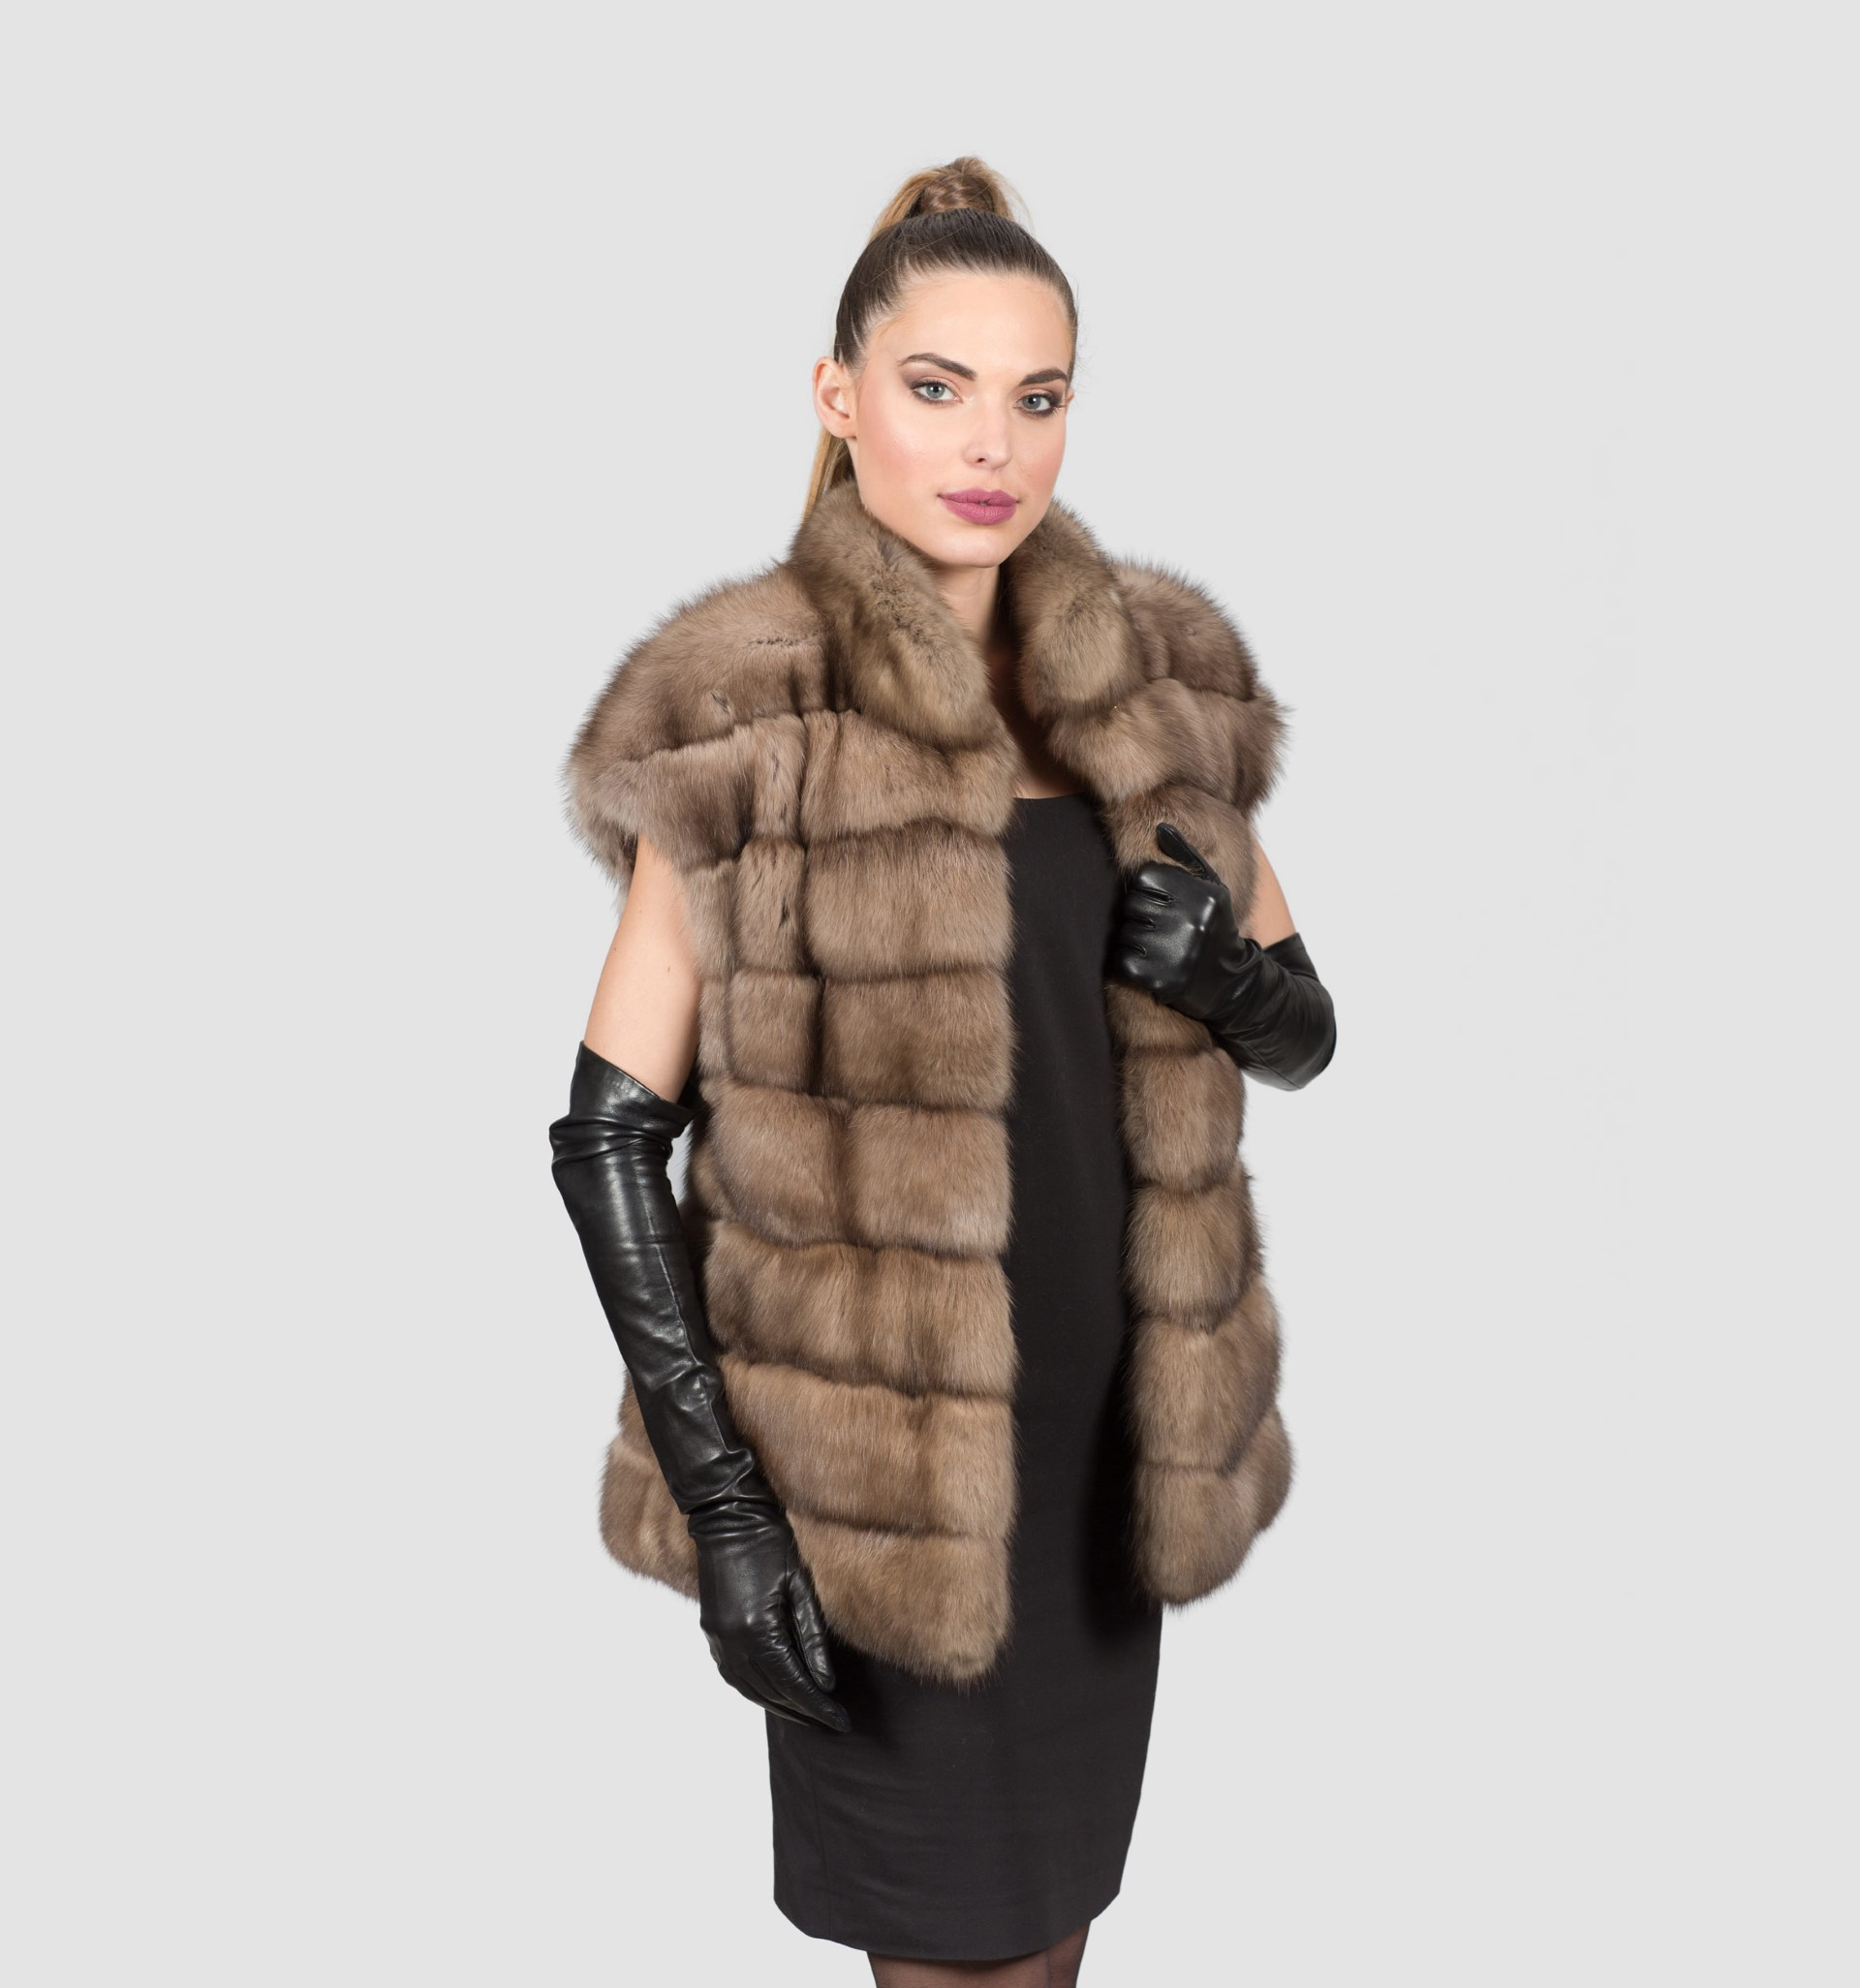 Russian Sable Fur Vest I Look Classy With This Natural